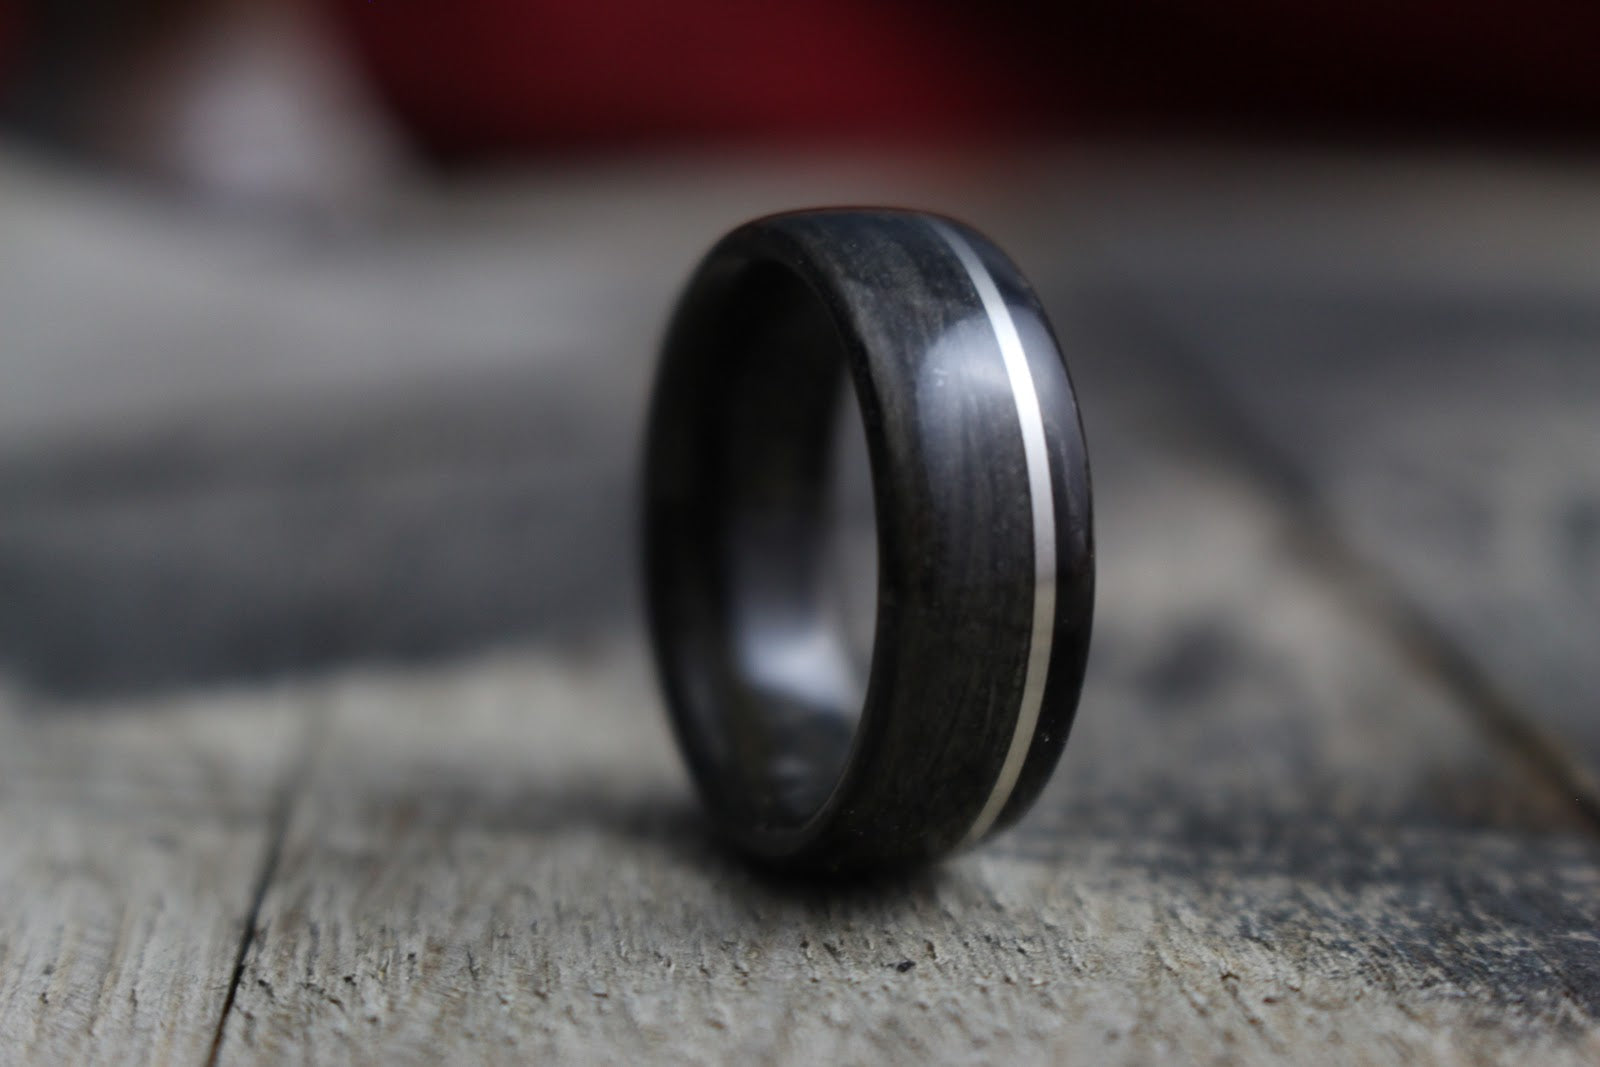 Alternative Men's Rings: Your Guide to the Materials, Styles and Shapes of Nontraditional Men's Wedding Rings